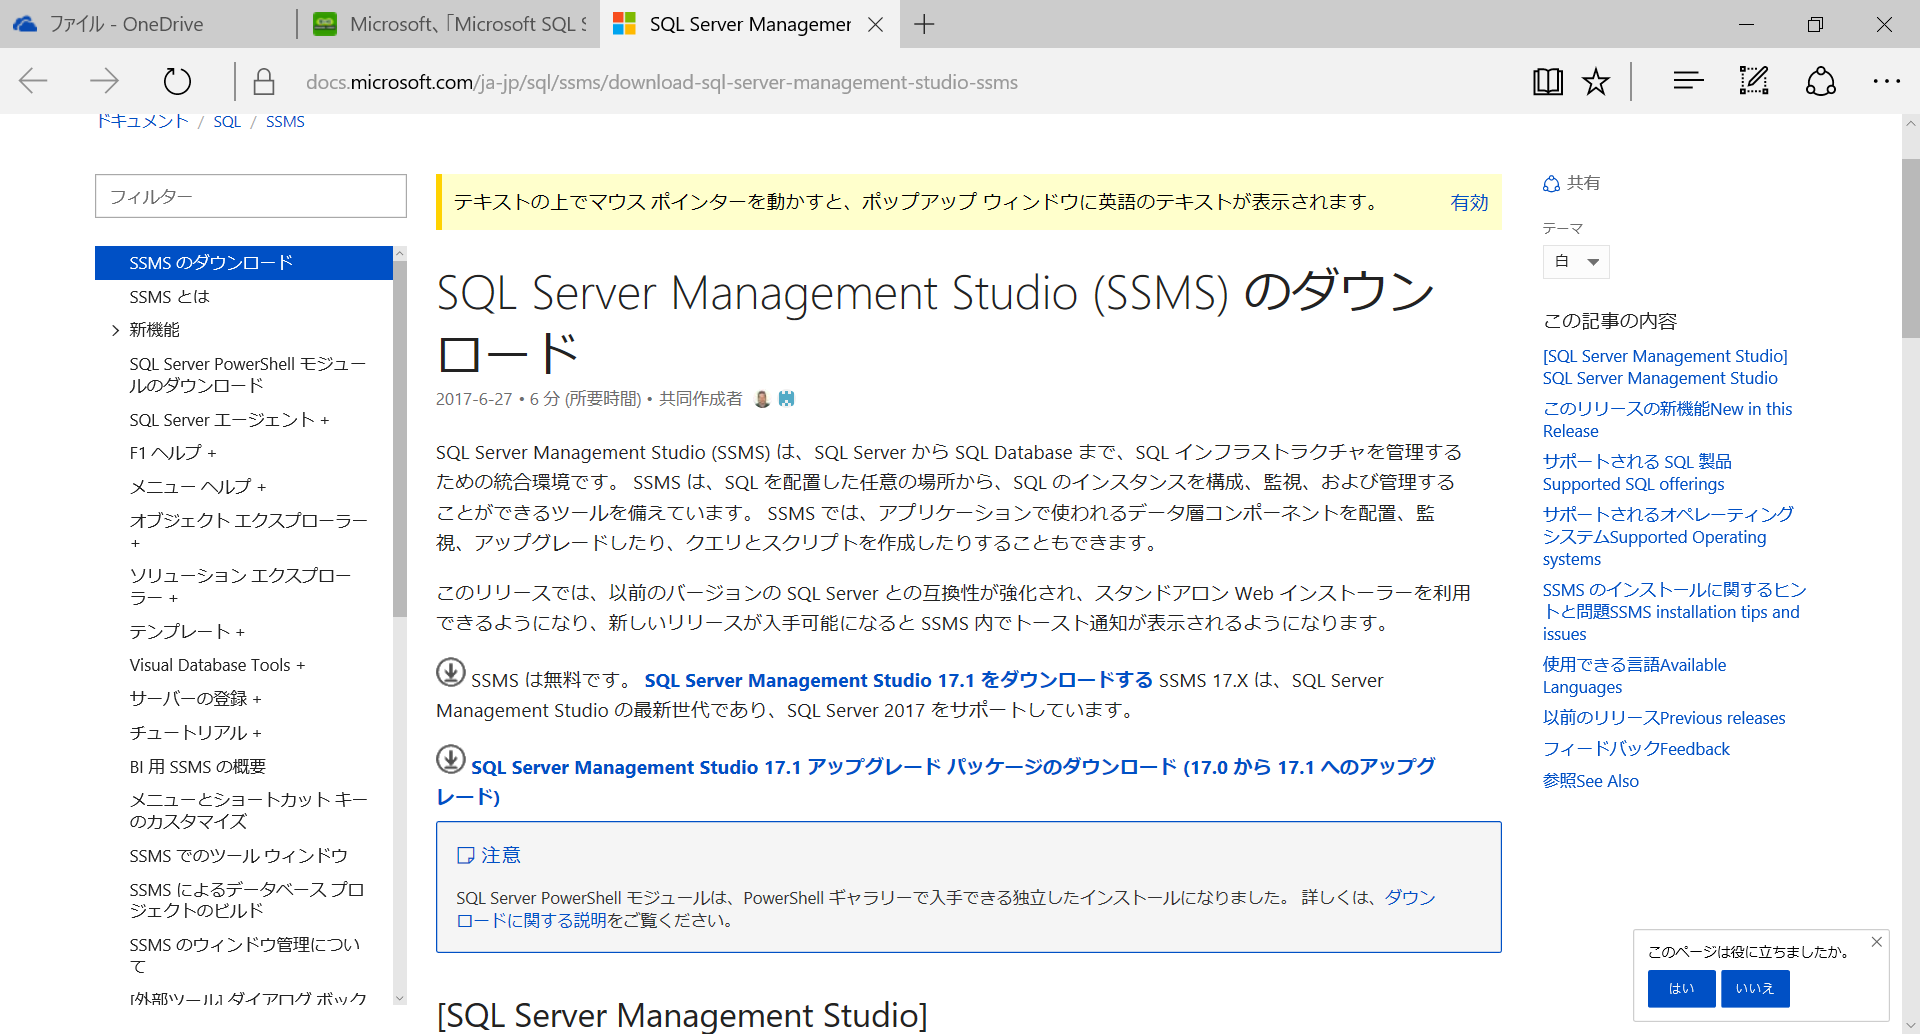 sql server management studio 2014 日本語版のダウ …